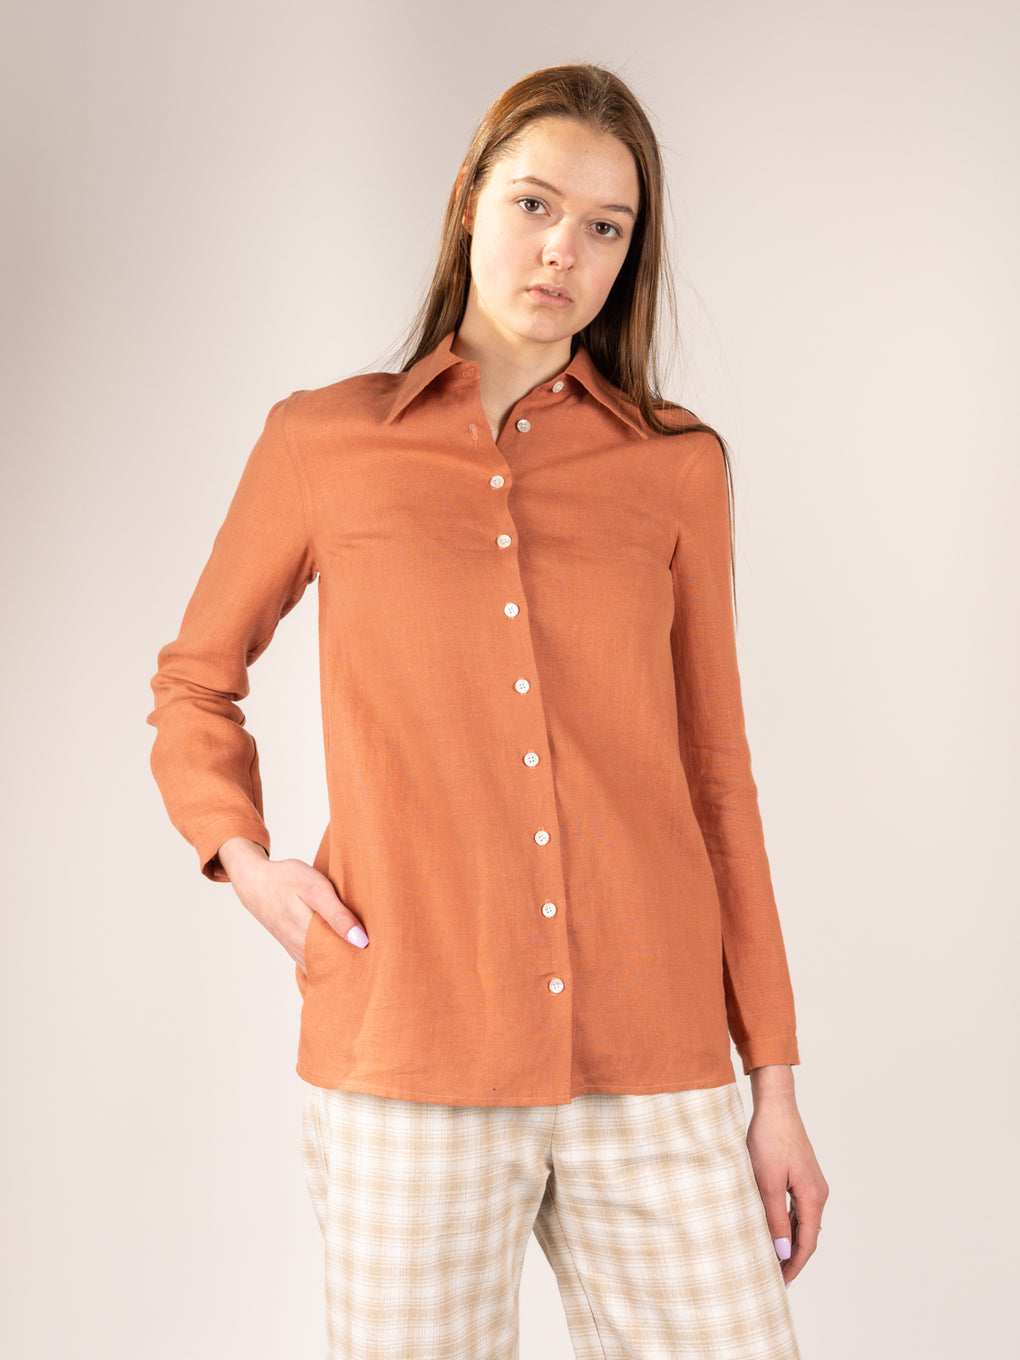 womens linen shirt, clay colour, button up, side pockets, made in usa, Town Clothes